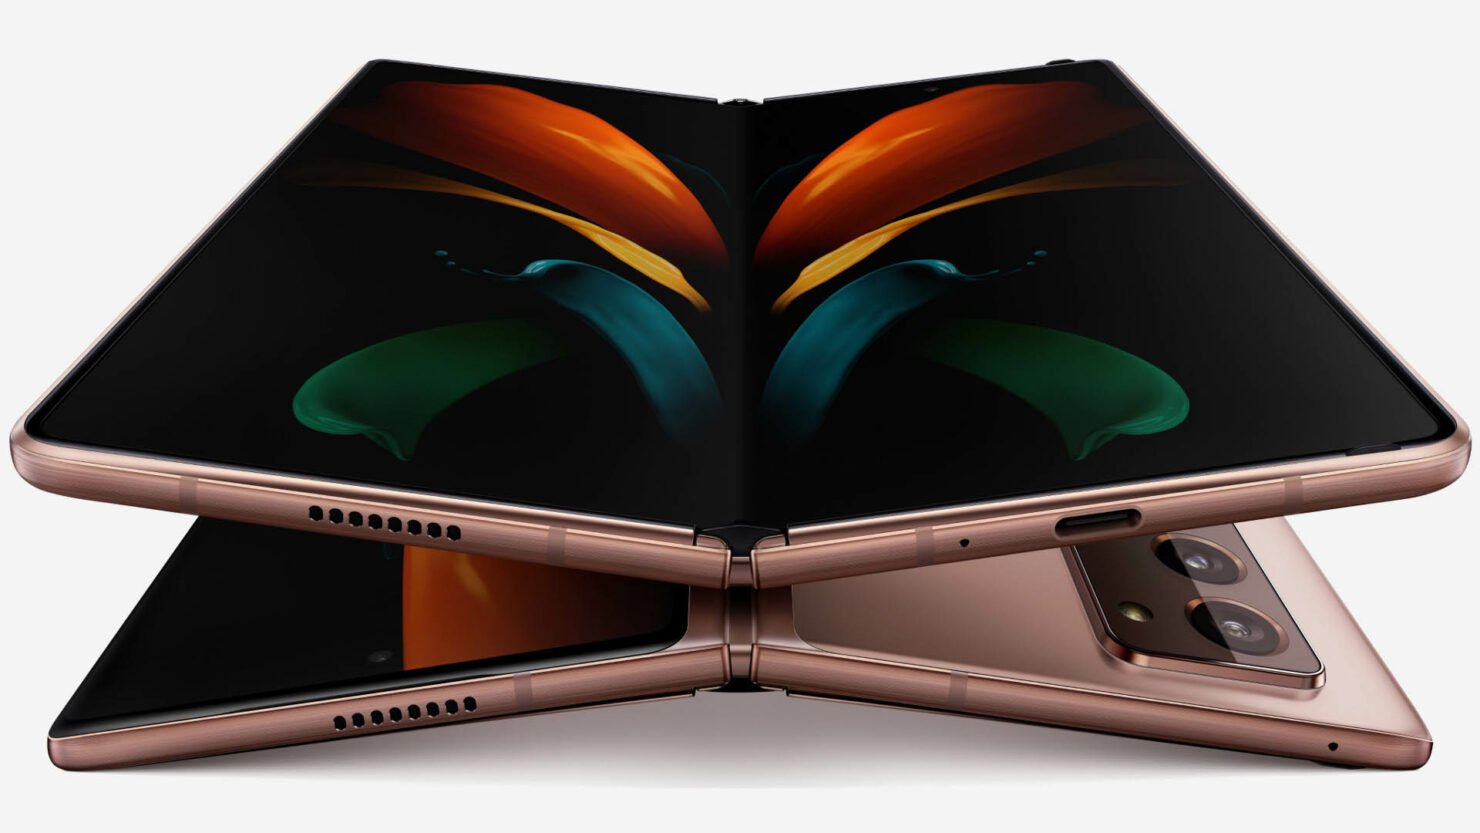 Samsung Galaxy Z Fold 2 Goes Official With Bigger 7.6-inch 120Hz Outward Display, Triple Rear Camera, Improved Design and More